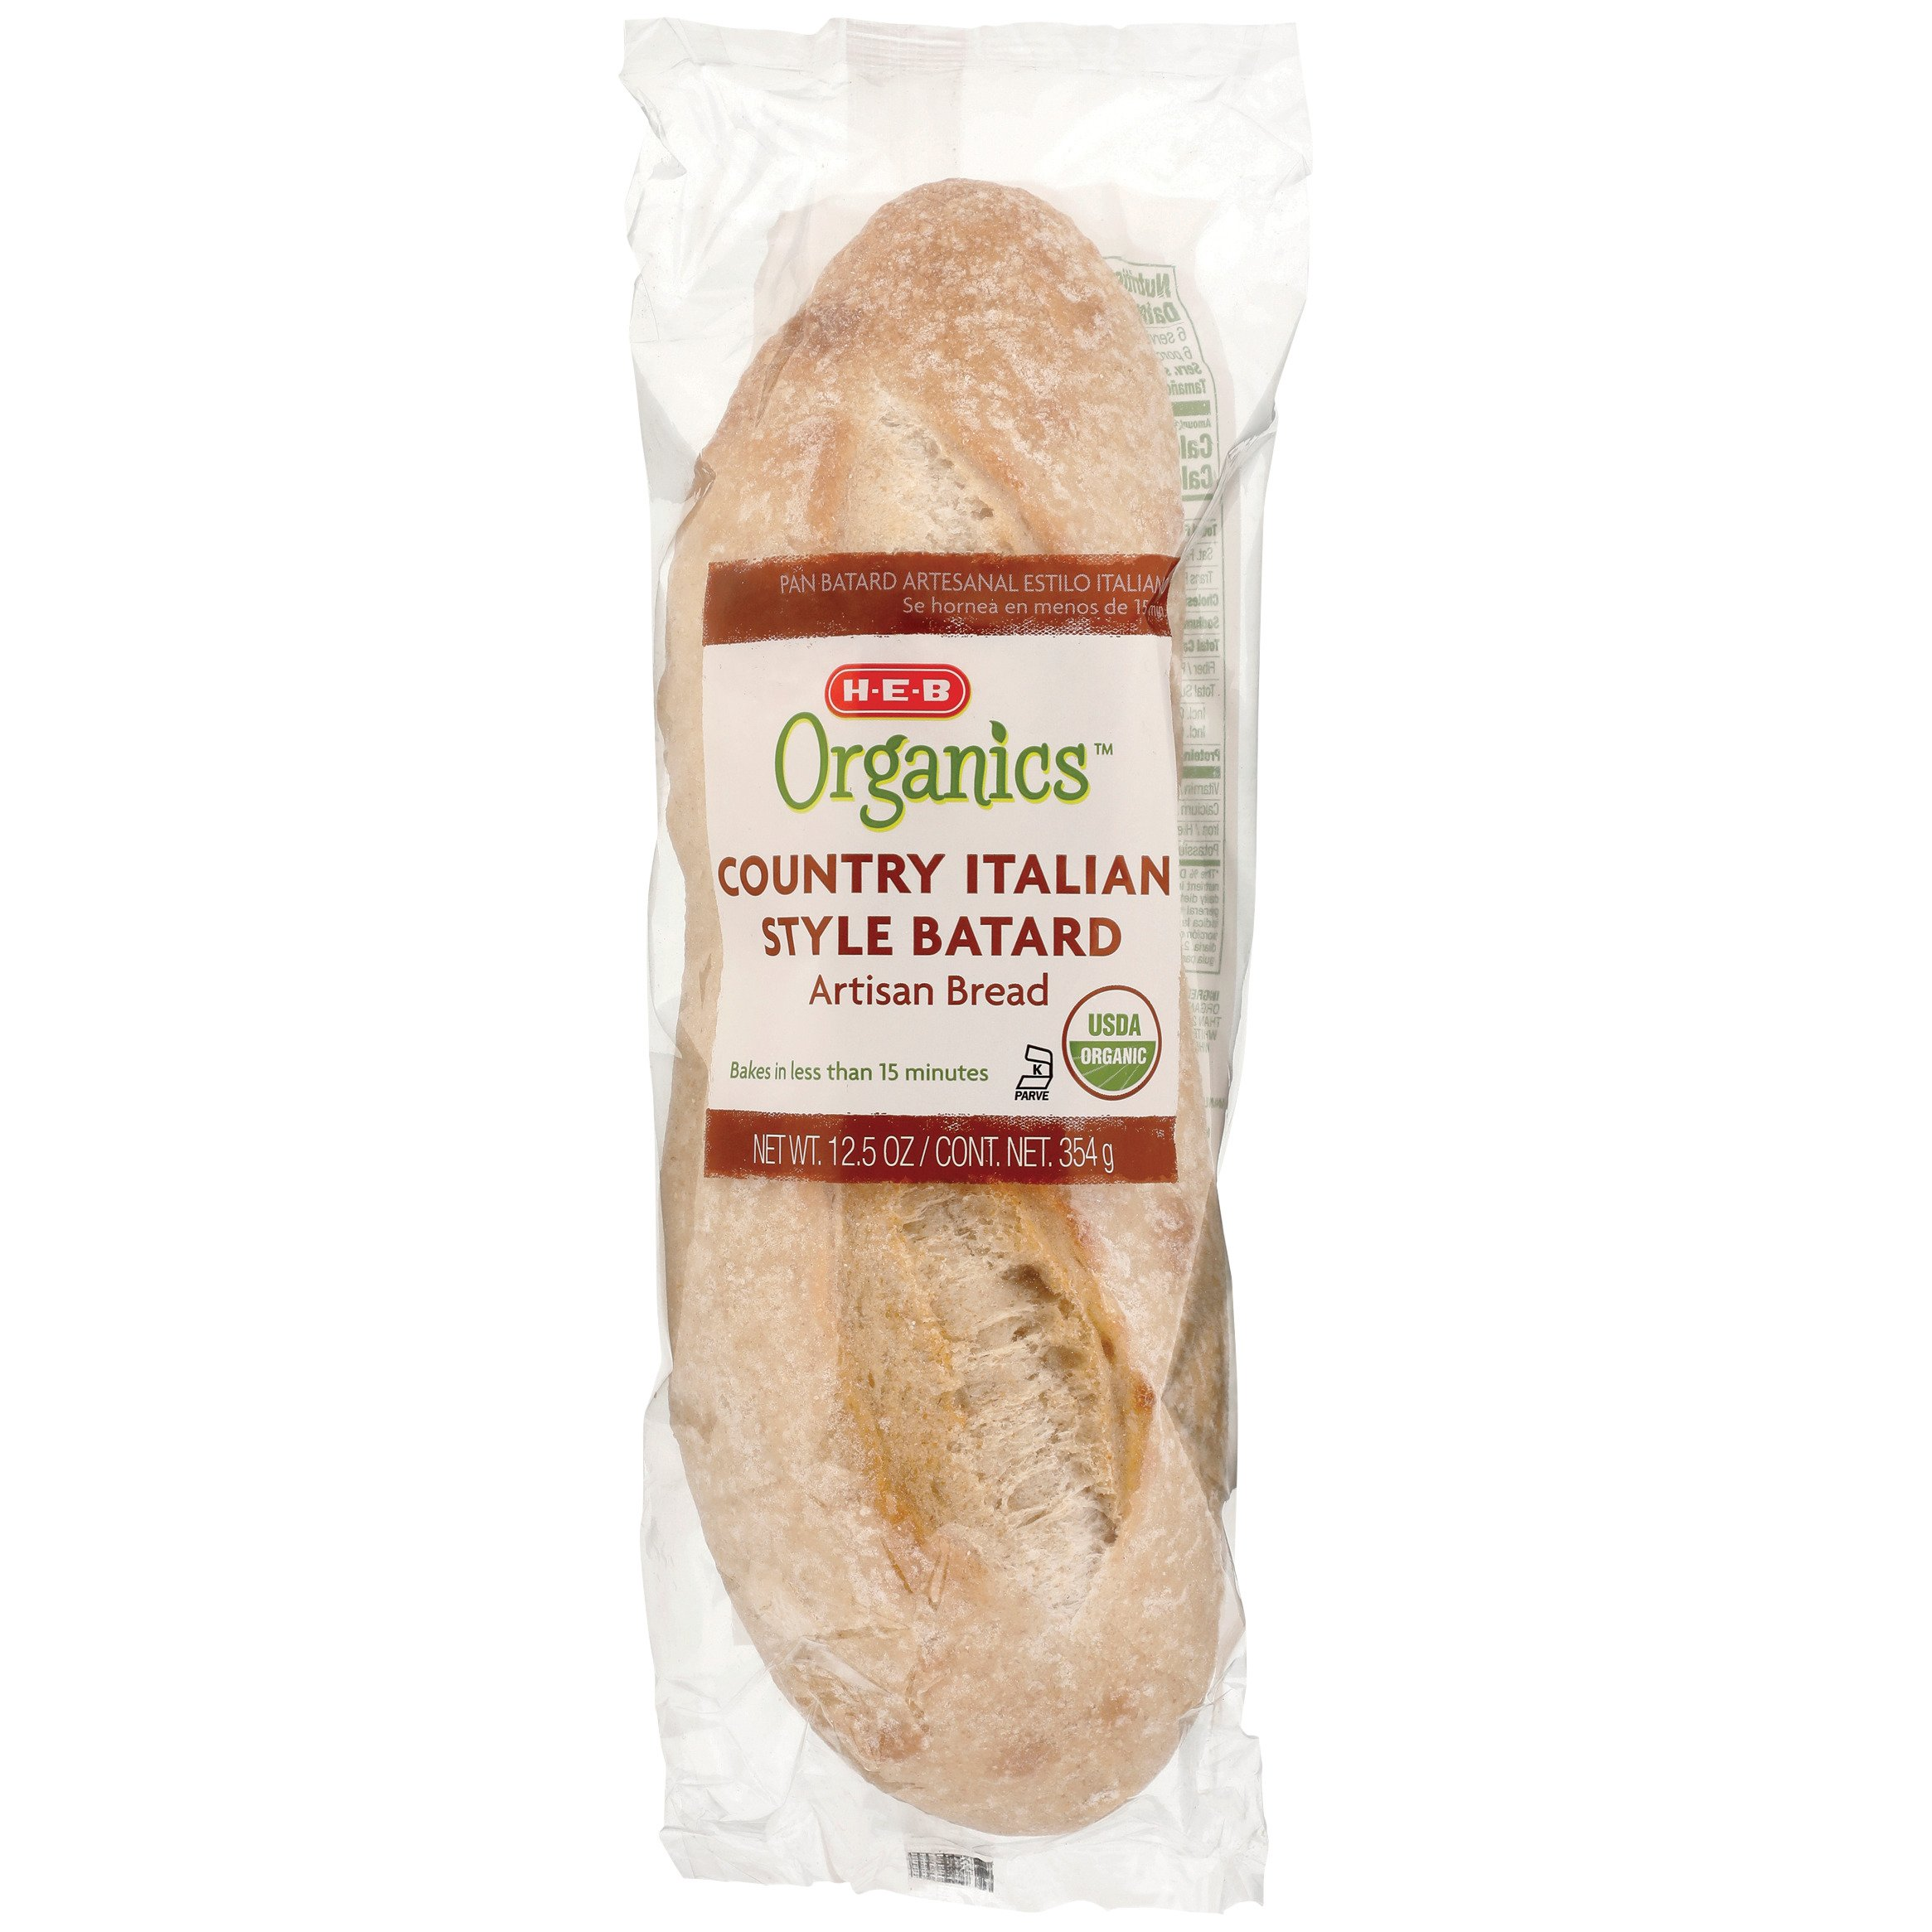 H E B Organics Country Italian Bread Shop Bread At H E B